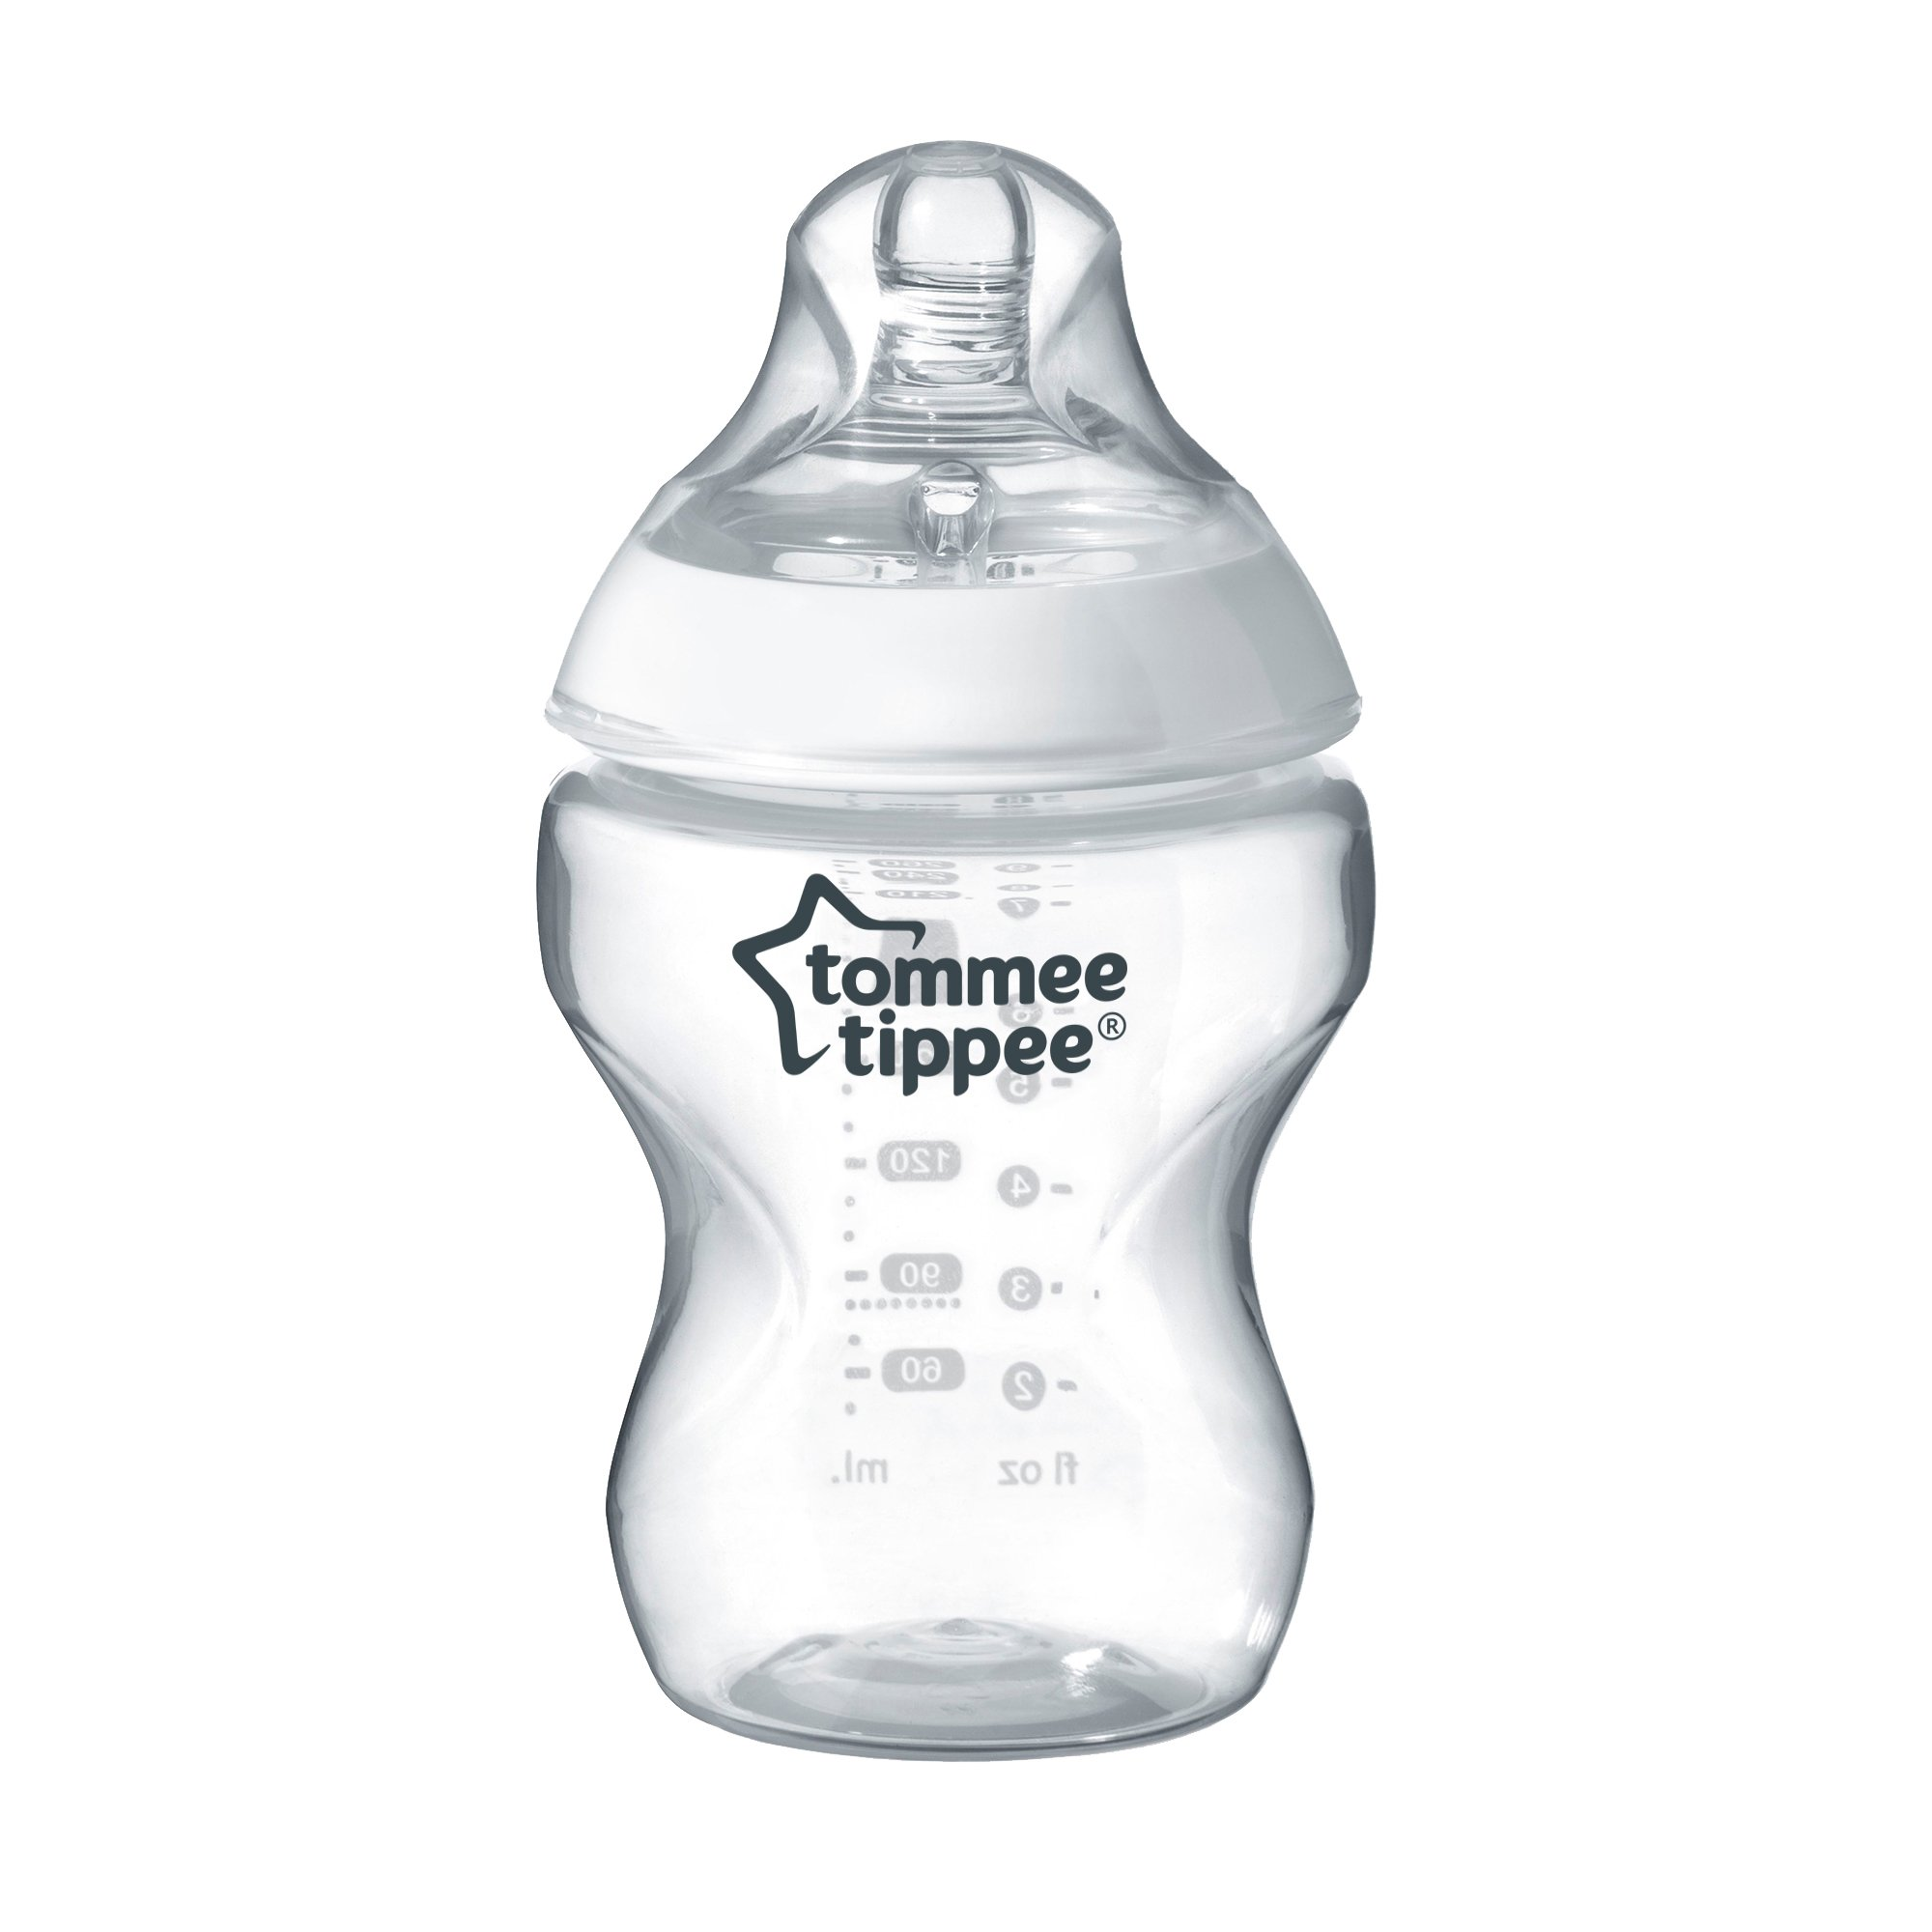 Tommee Tippee Closer to Nature Clear Baby Bottle, 260 ml, Pack of 1